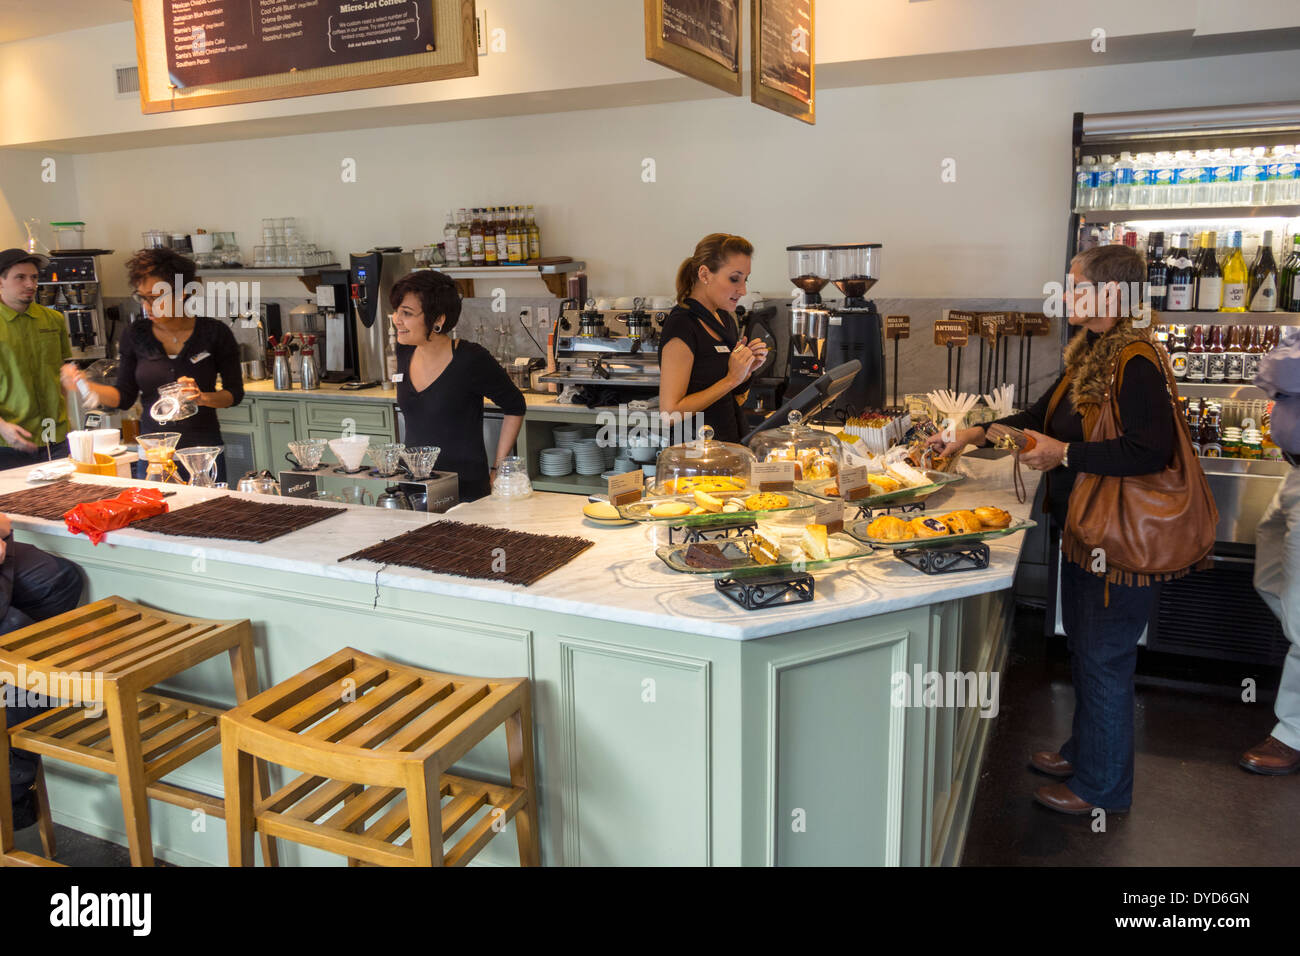 Winter Park Florida South Park Avenue Barnie's Coffee Kitchen cafe restaurant inside interior customers counter woman employee coworkers business - Stock Image